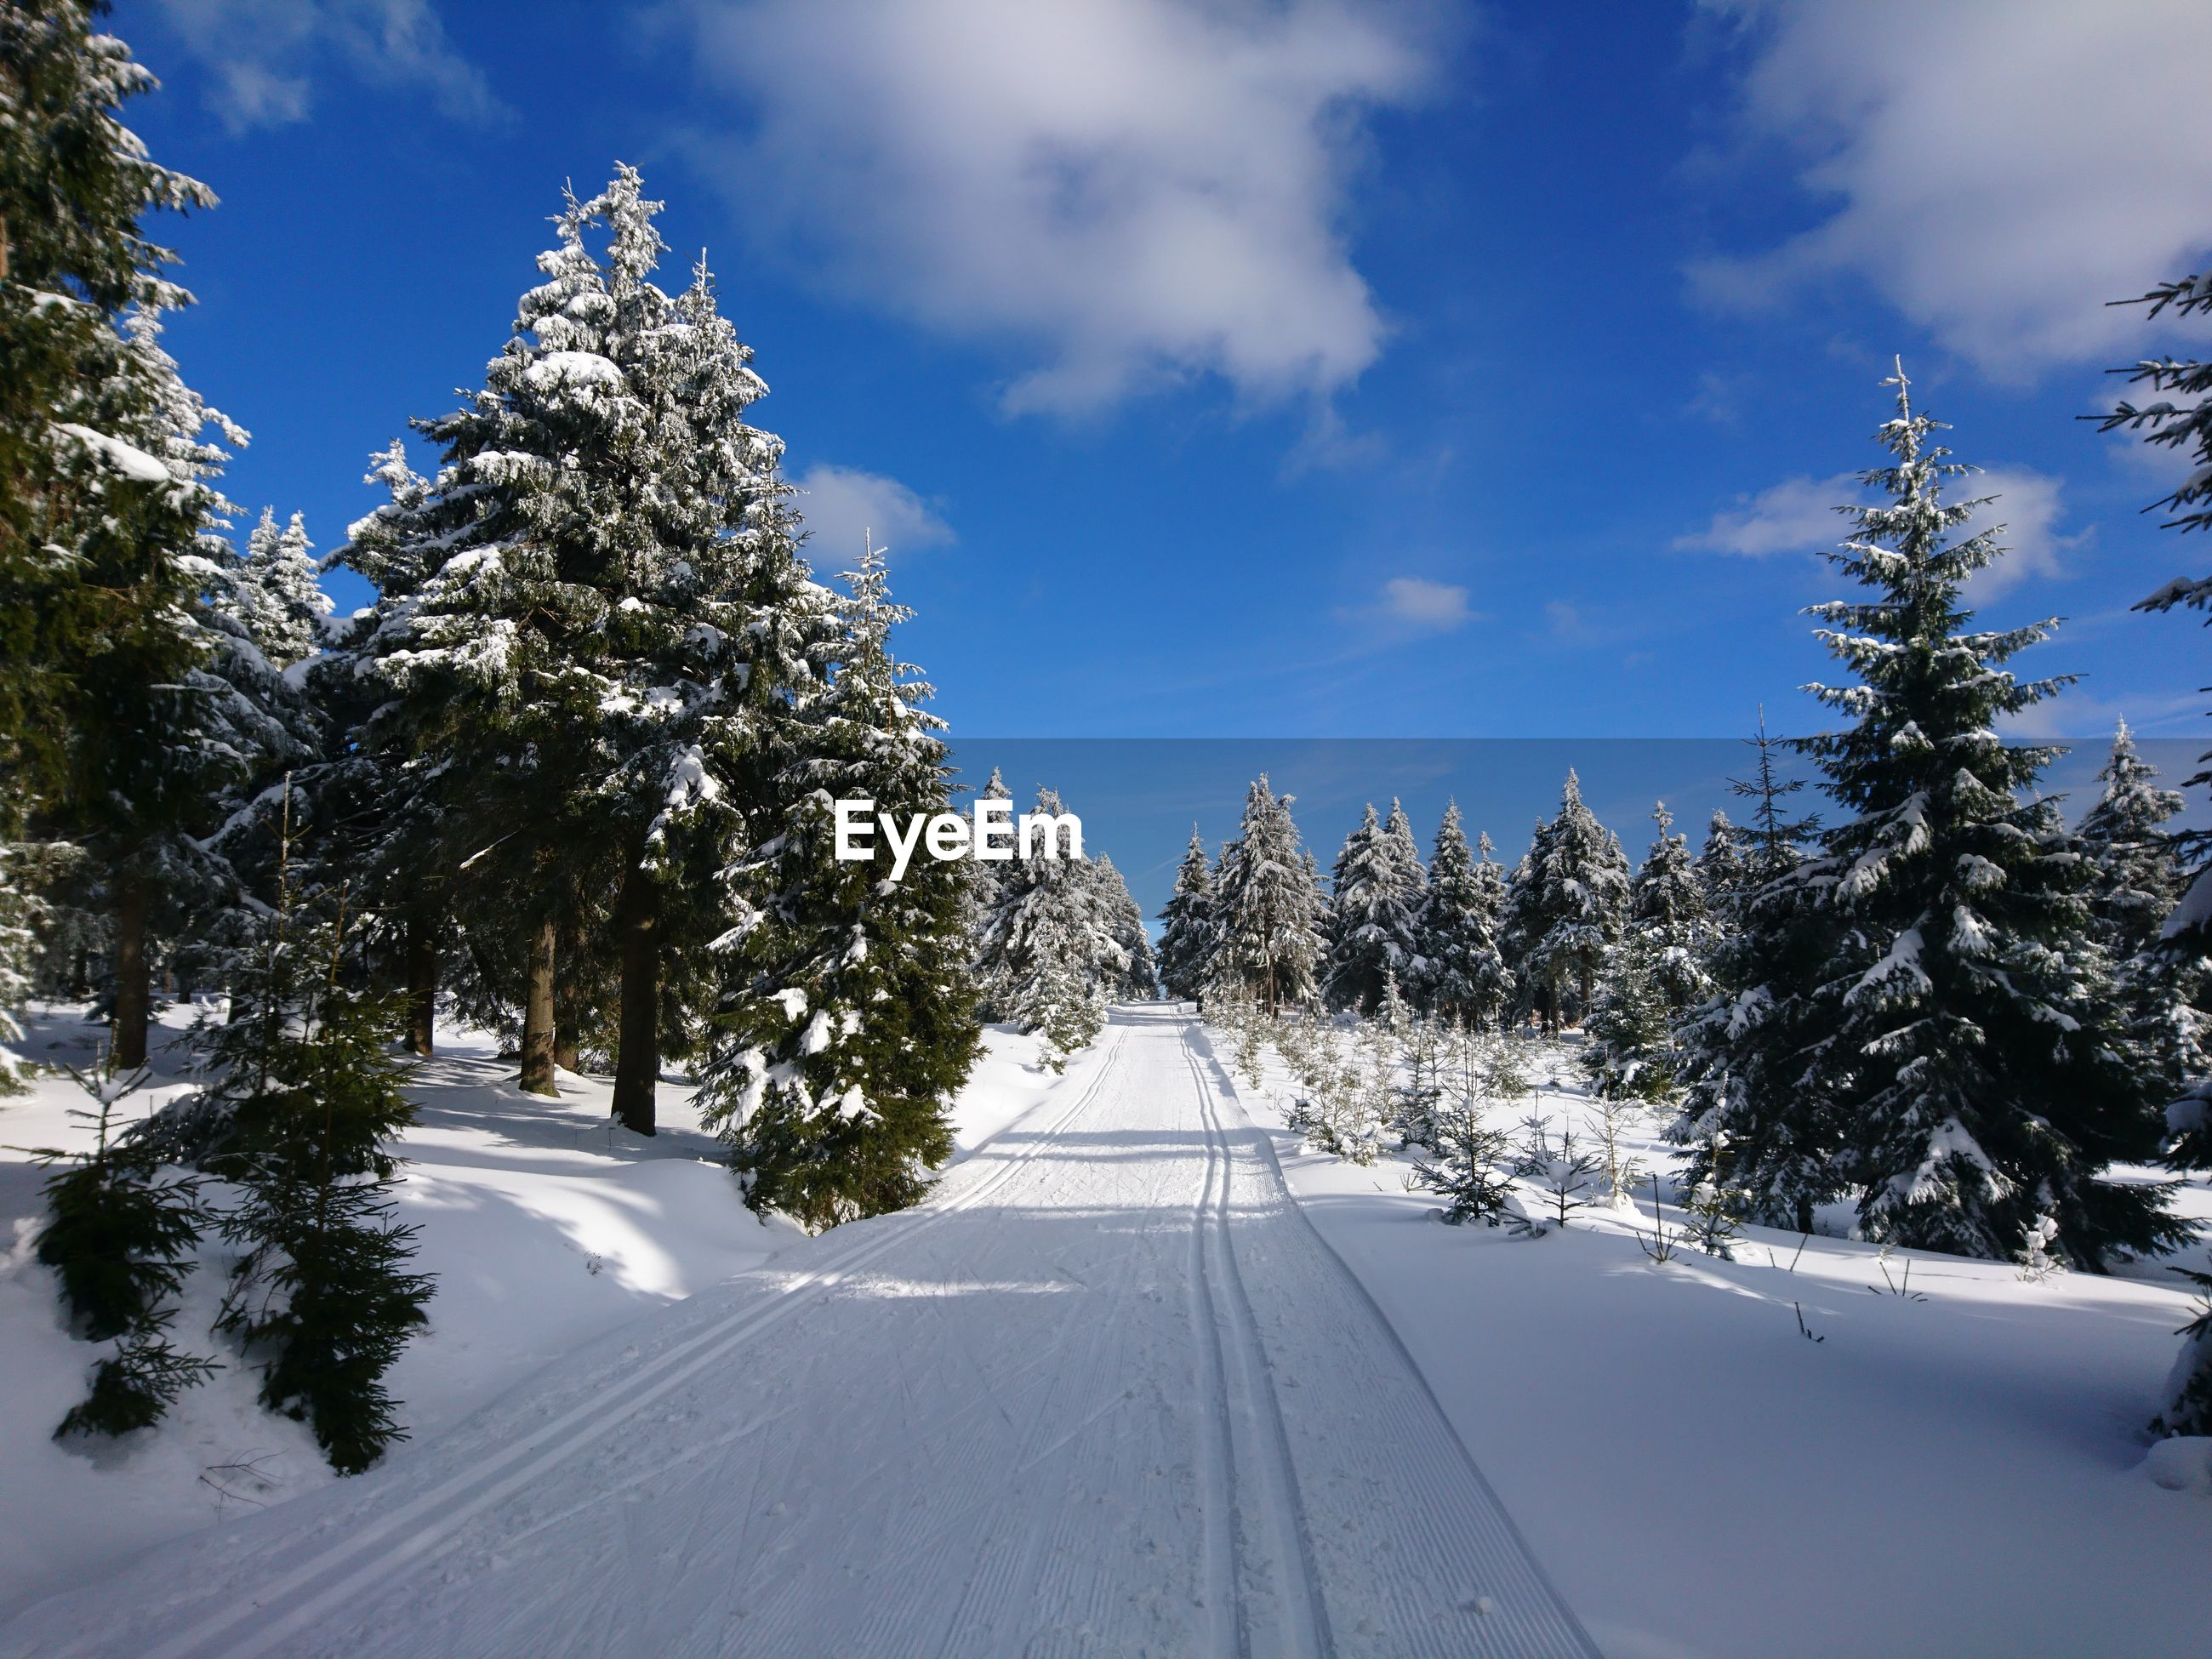 TREES ON SNOW COVERED ROAD